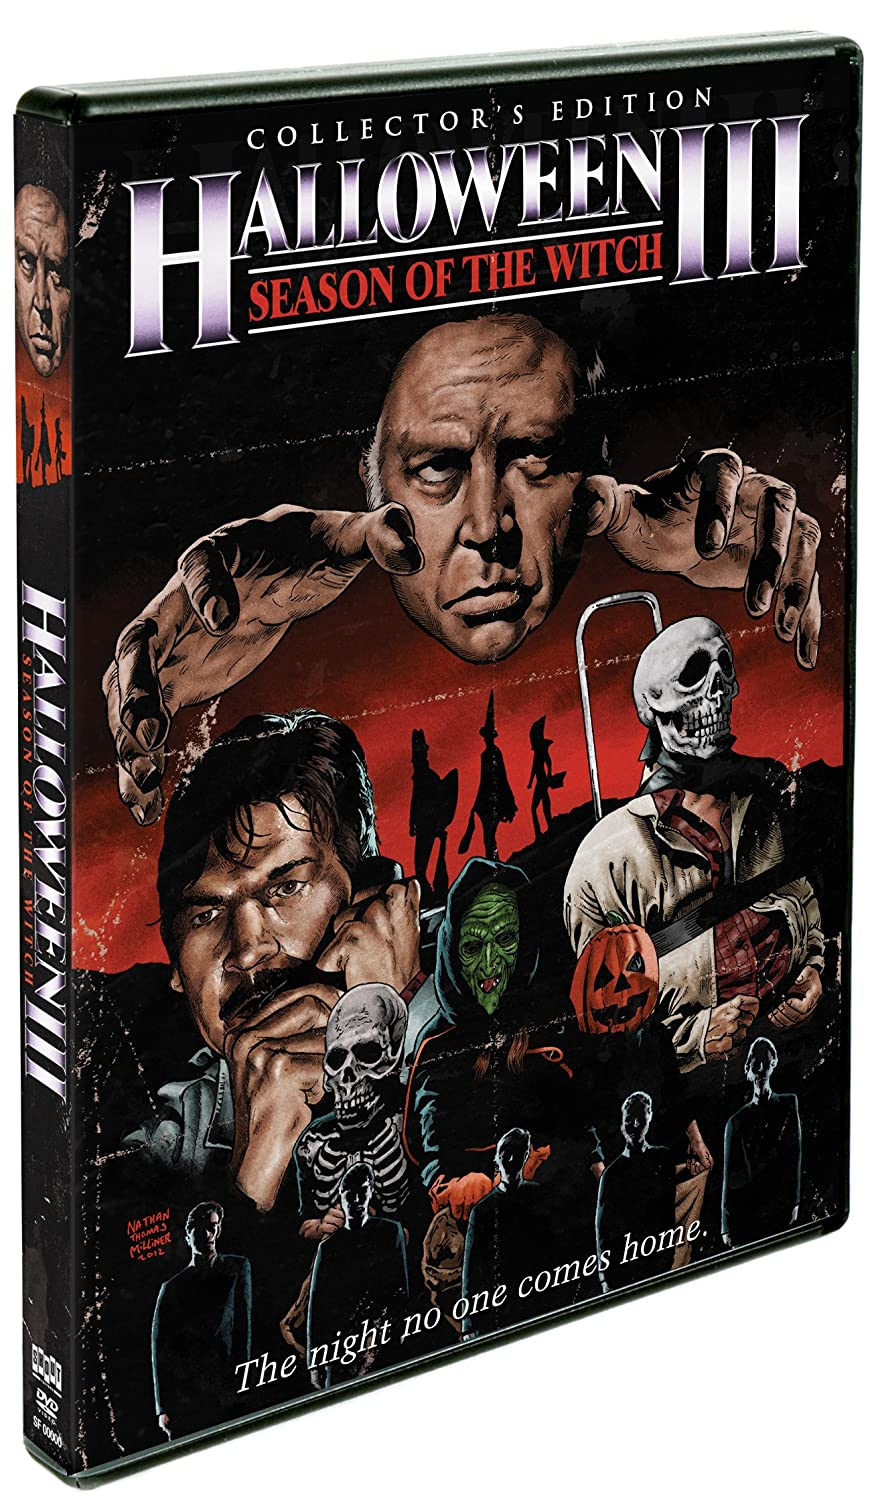 amazoncom halloween iii season of the witch collectors edition tom atkins stacey nelkin dan oherlihy tommy lee wallace movies tv - Halloween 3 Season Of The Witch Remake